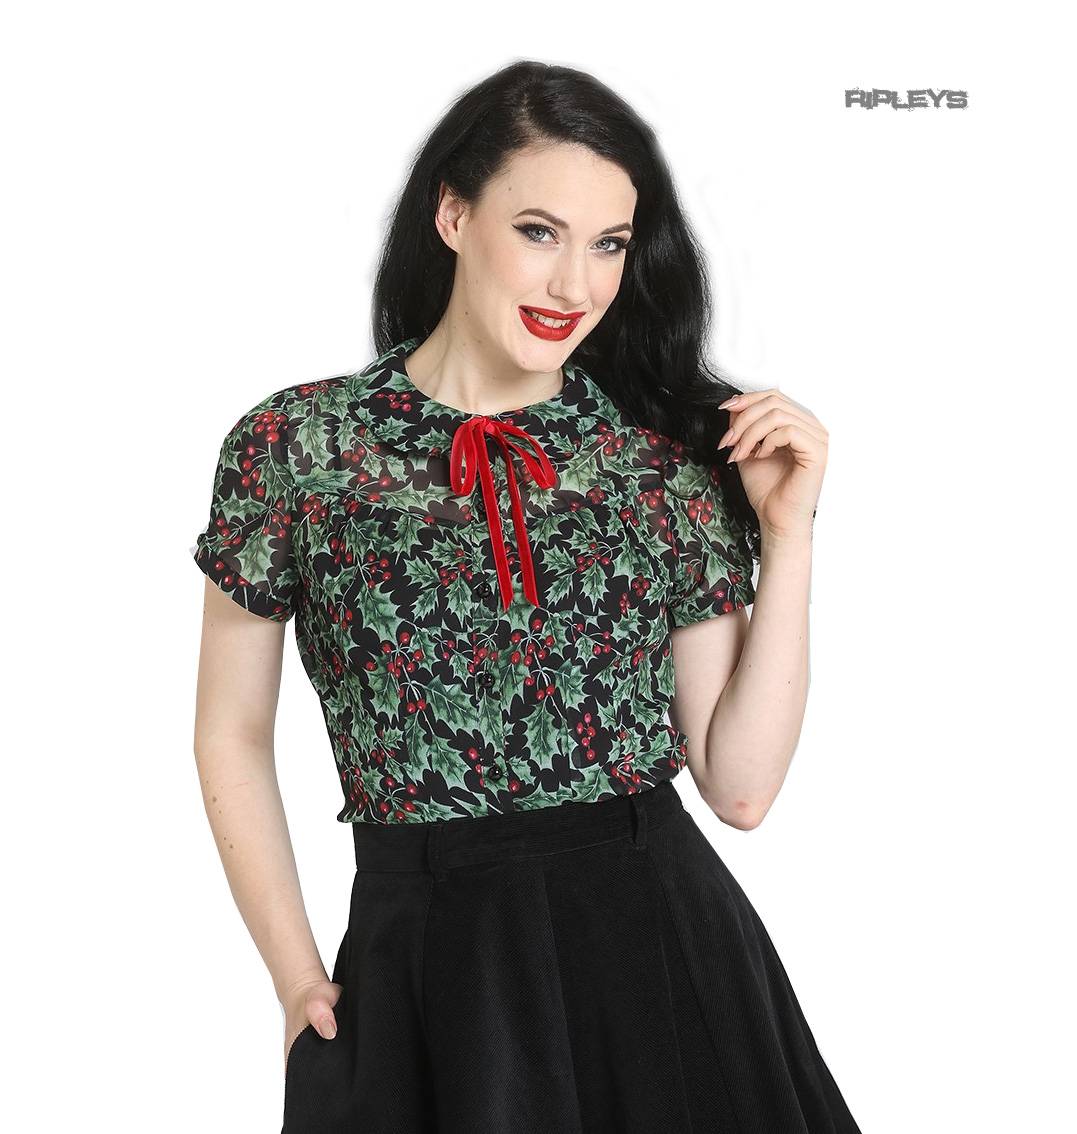 Hell-Bunny-50s-Shirt-Top-Christmas-Festive-HOLLY-Berry-Blouse-Black-All-Sizes thumbnail 8